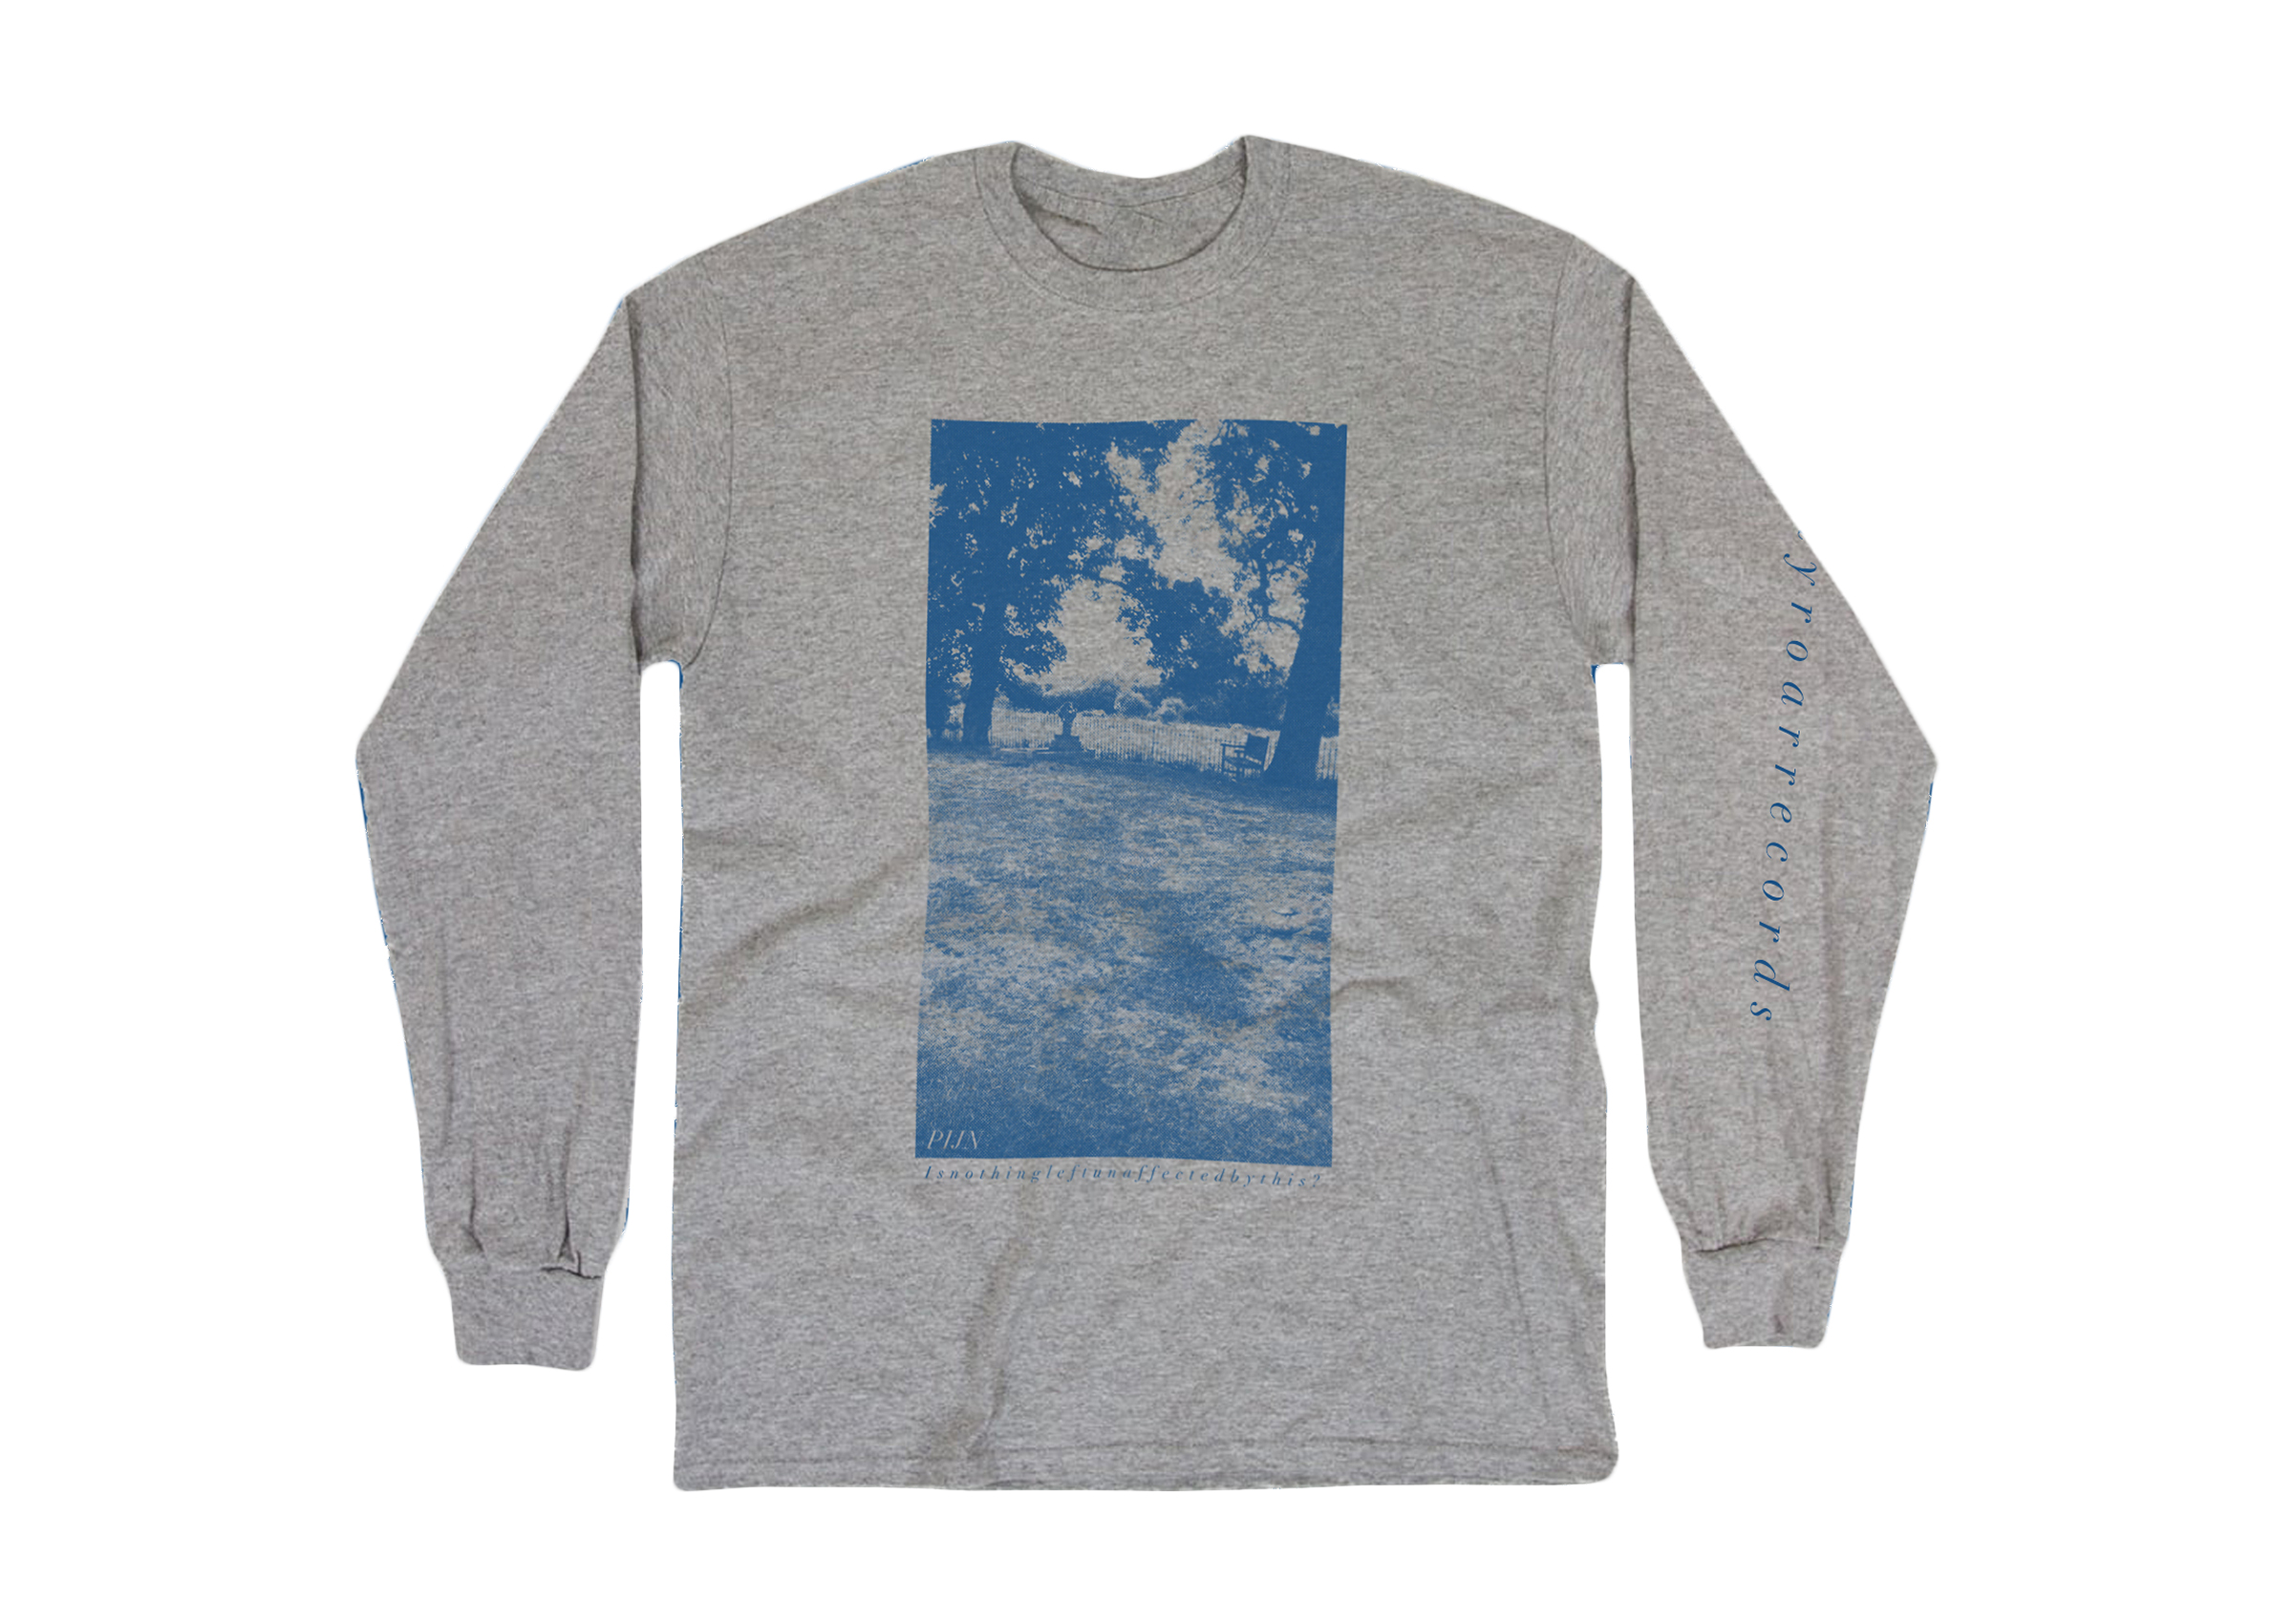 Pijn - Loss long sleeve